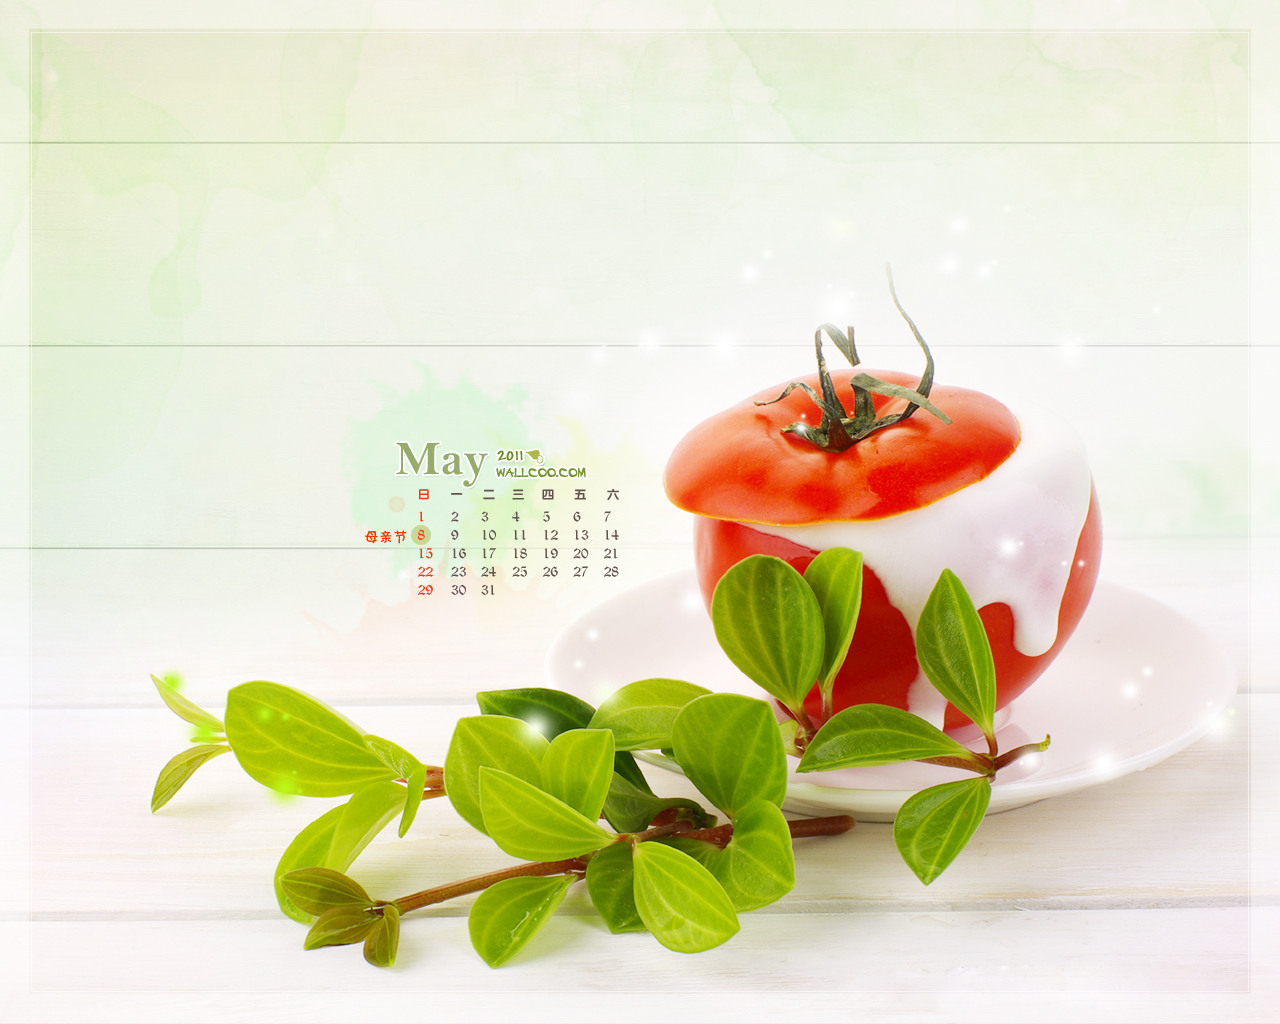 In January Calendar Wallpaper 29576